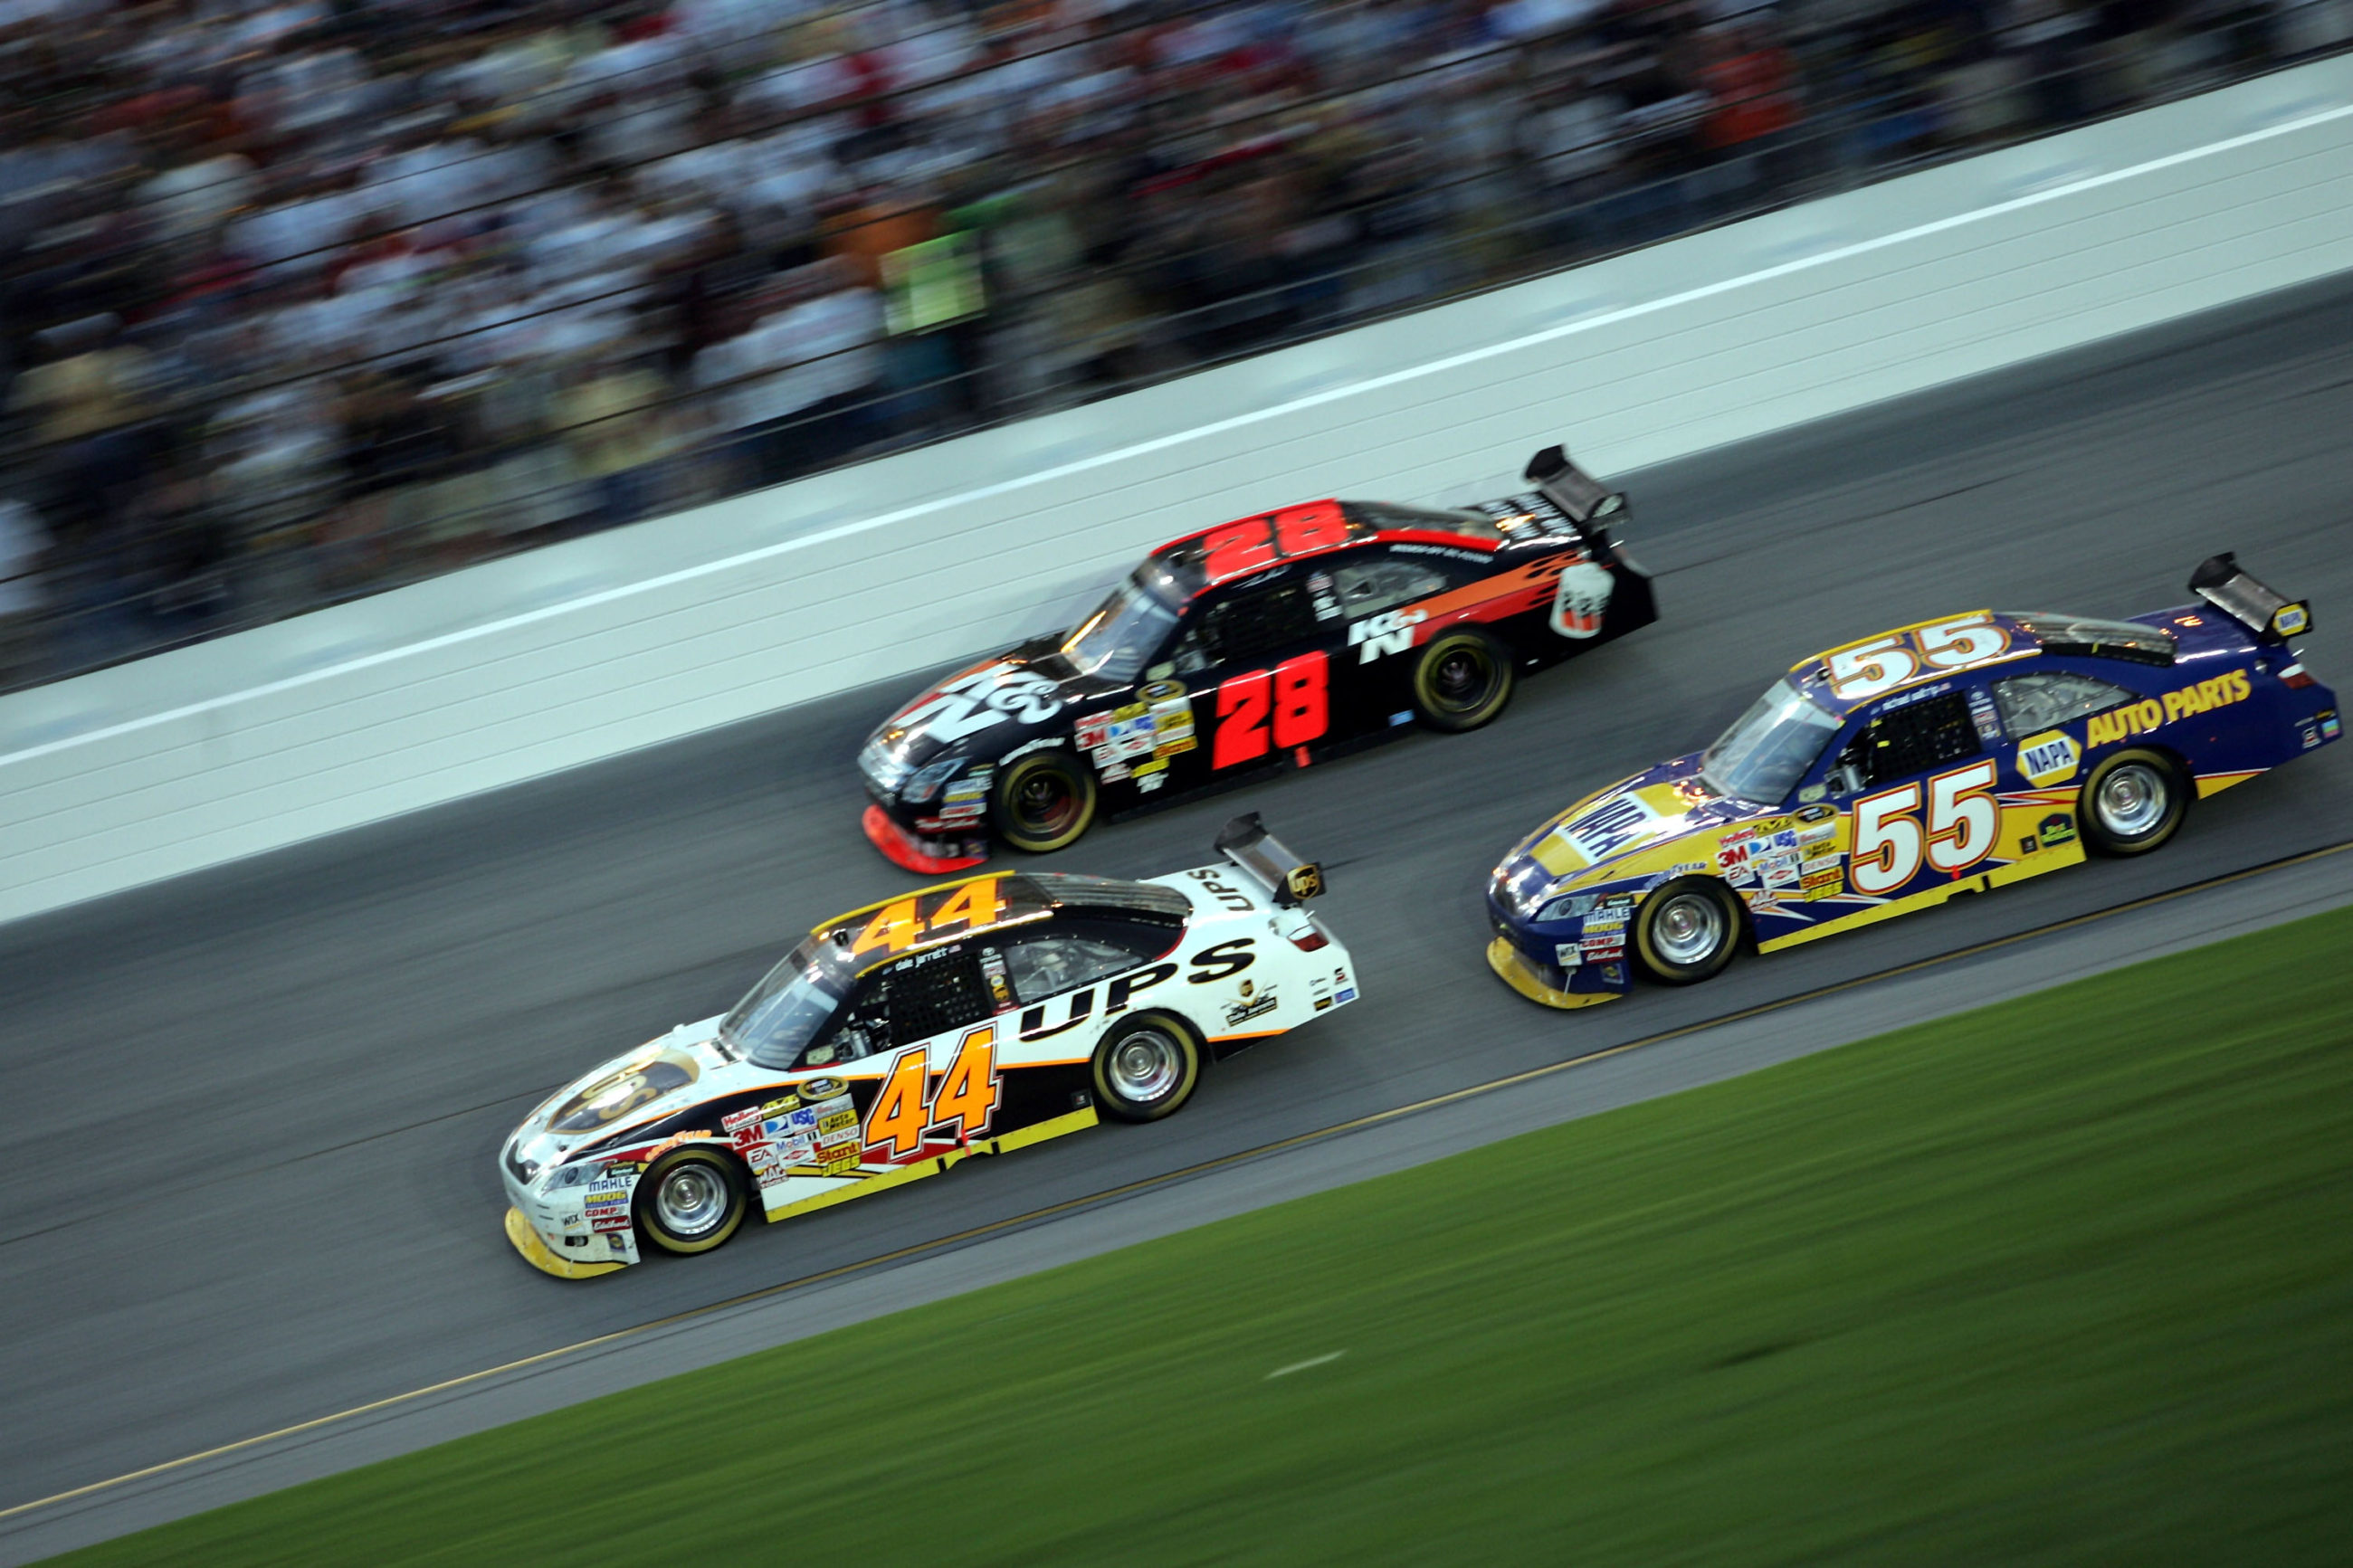 Former NASCAR driver Dale Jarrett Suffers from Memory Loss - Concussions?